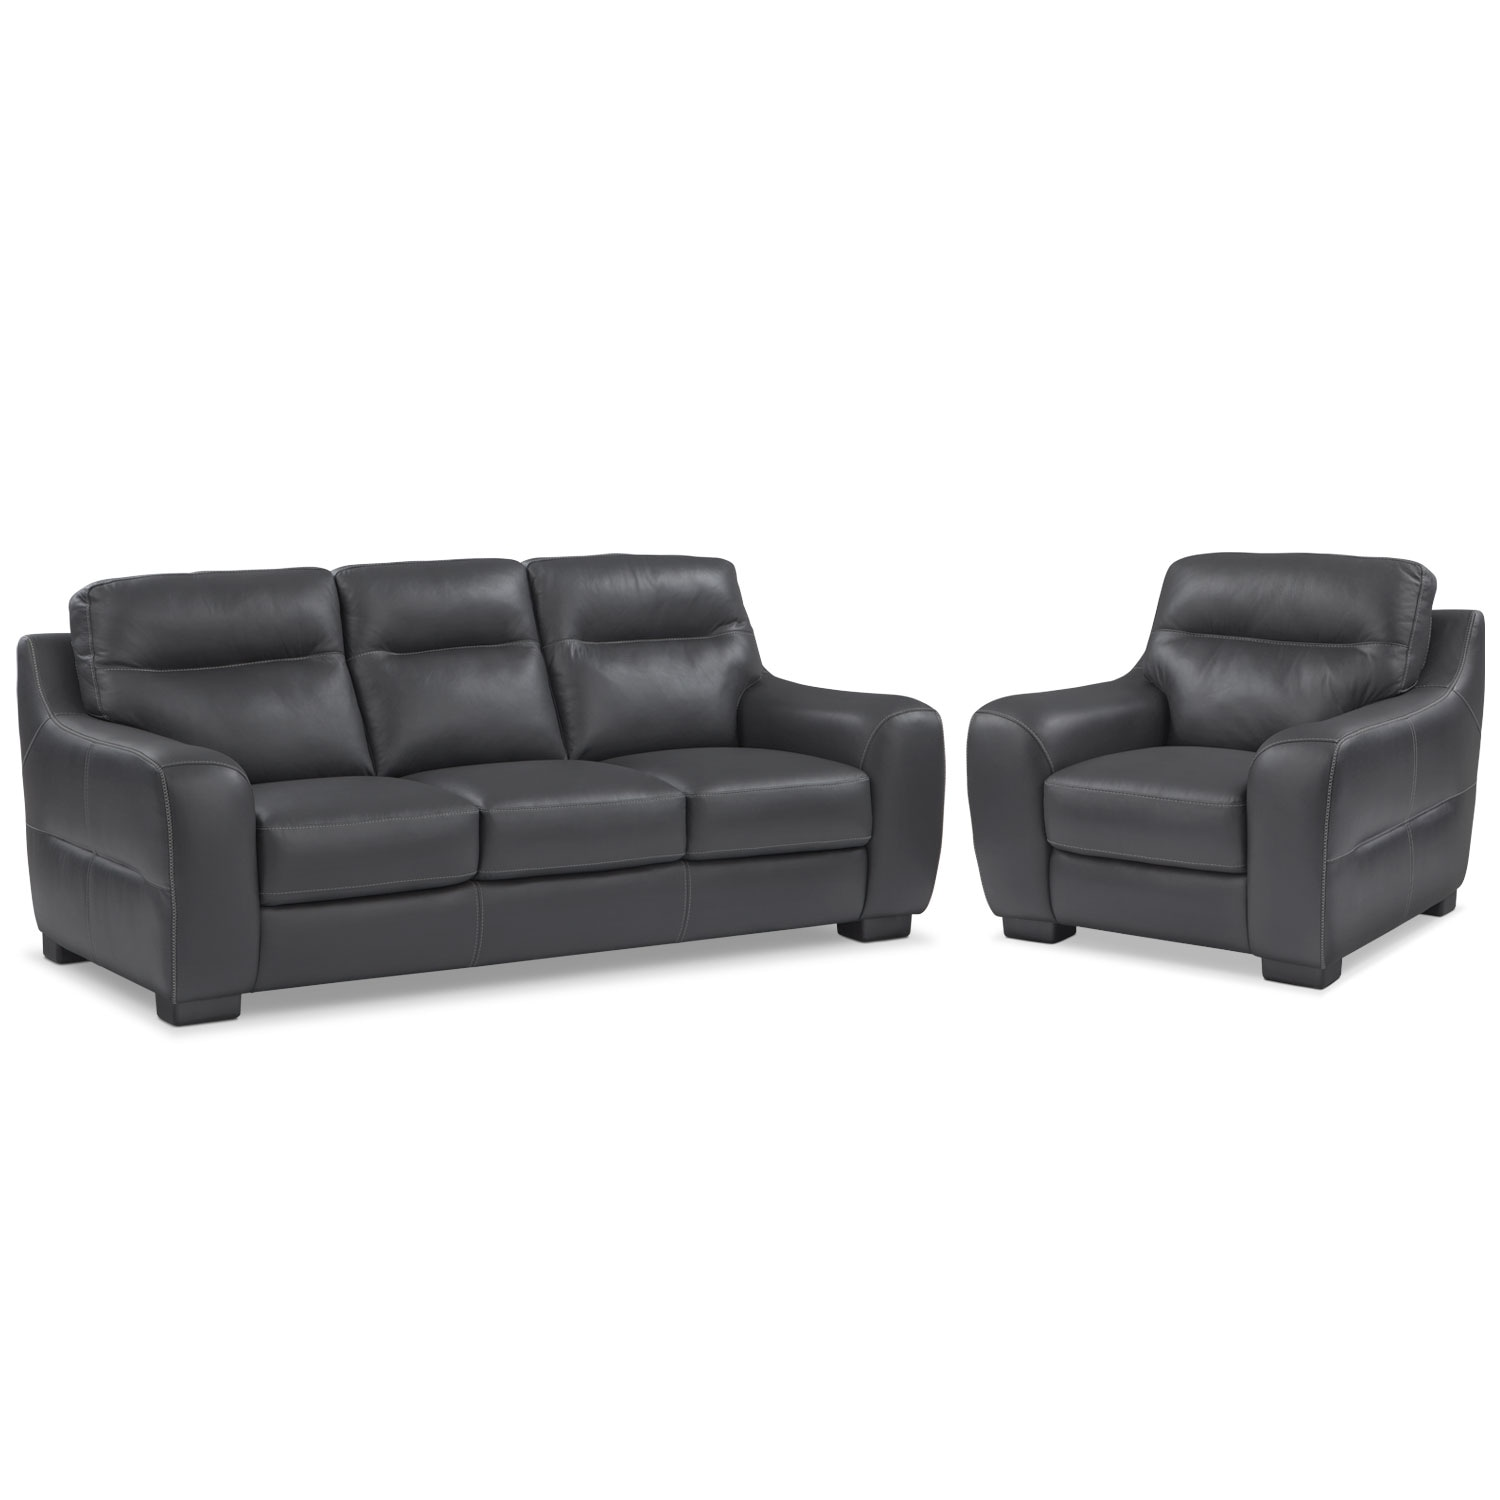 Living Room Furniture - Rocco Black 2 Pc. Living Room w/ Chair